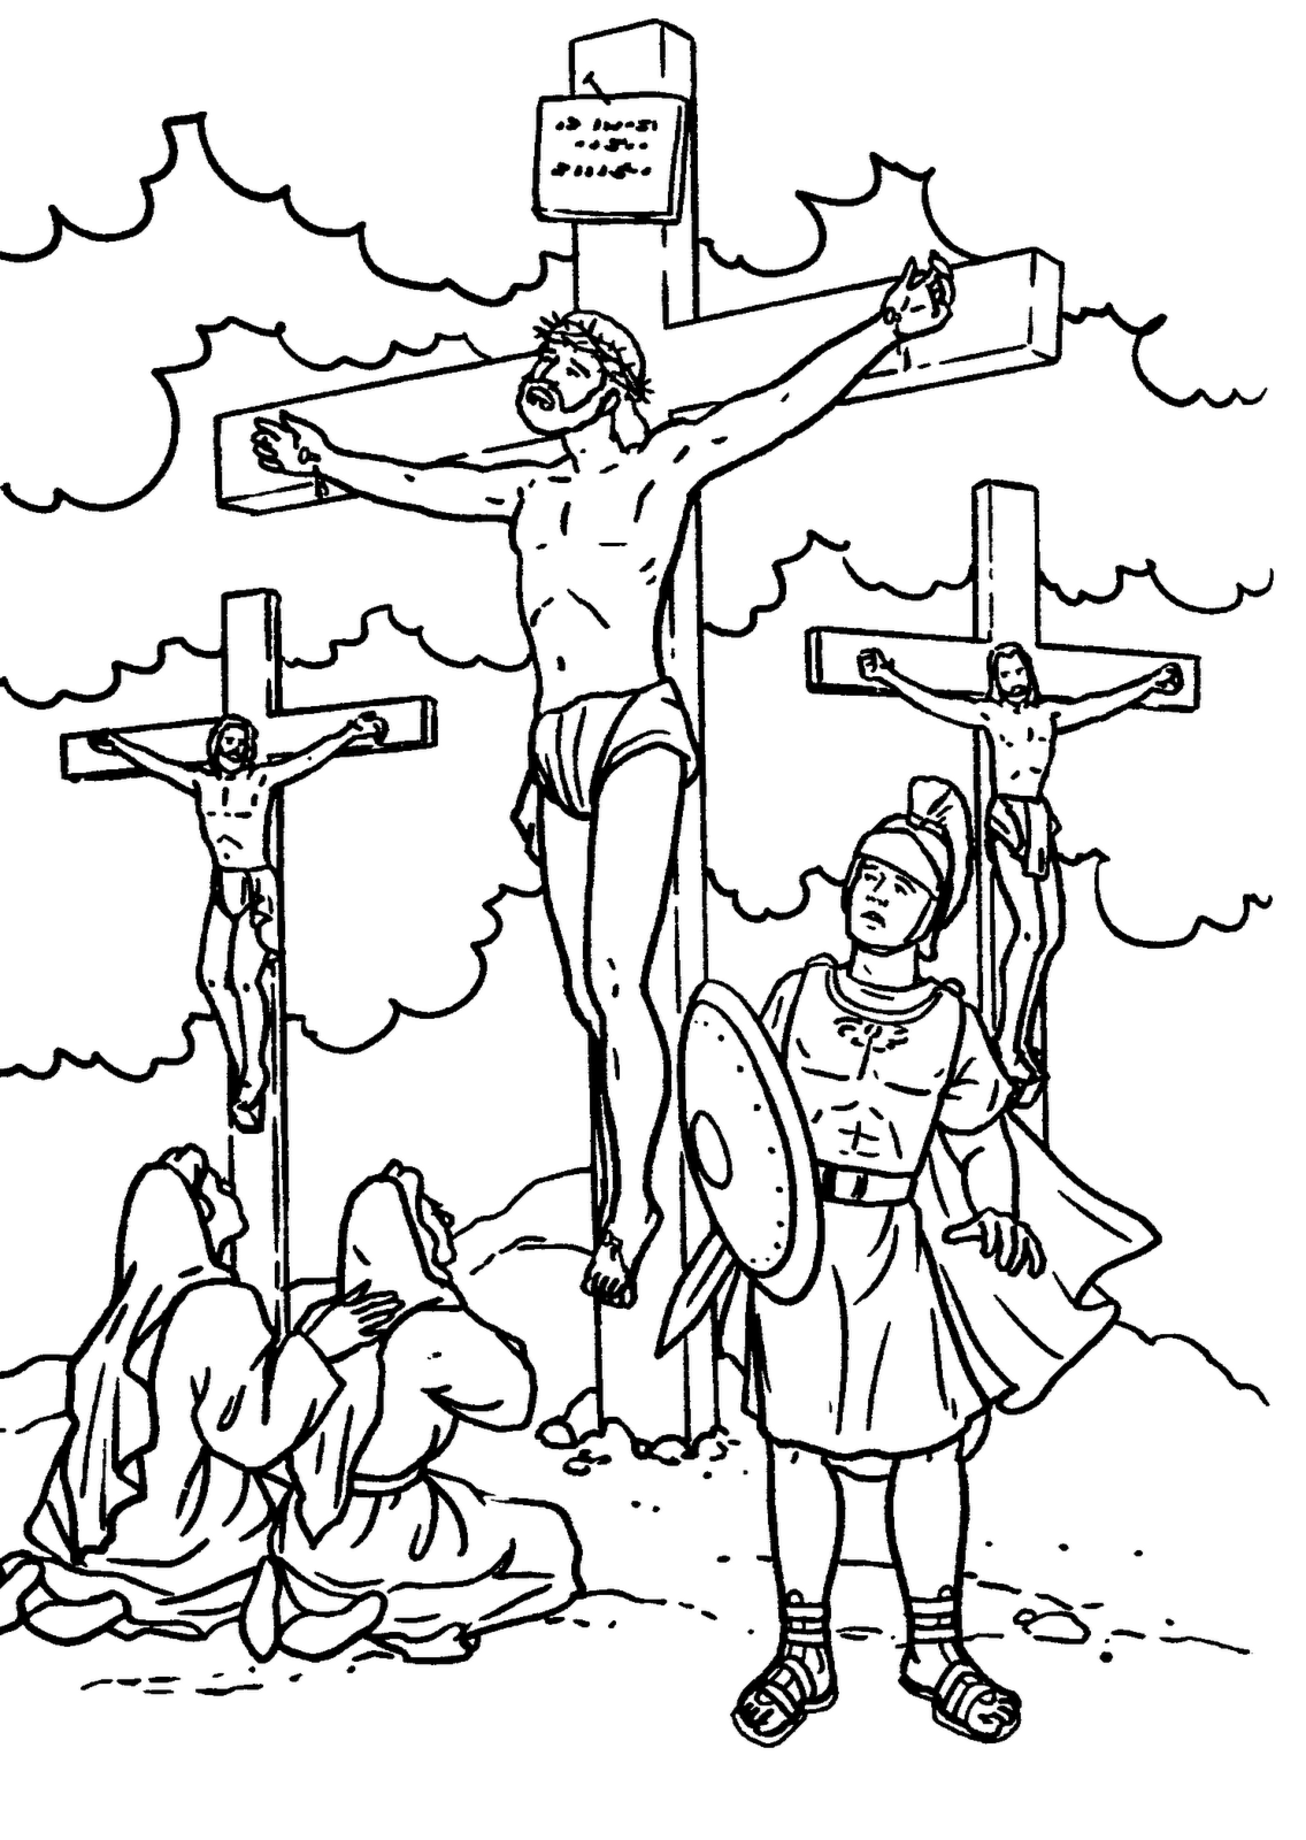 coloring jesus jesus empty tomb coloring pages at getdrawings free download coloring jesus